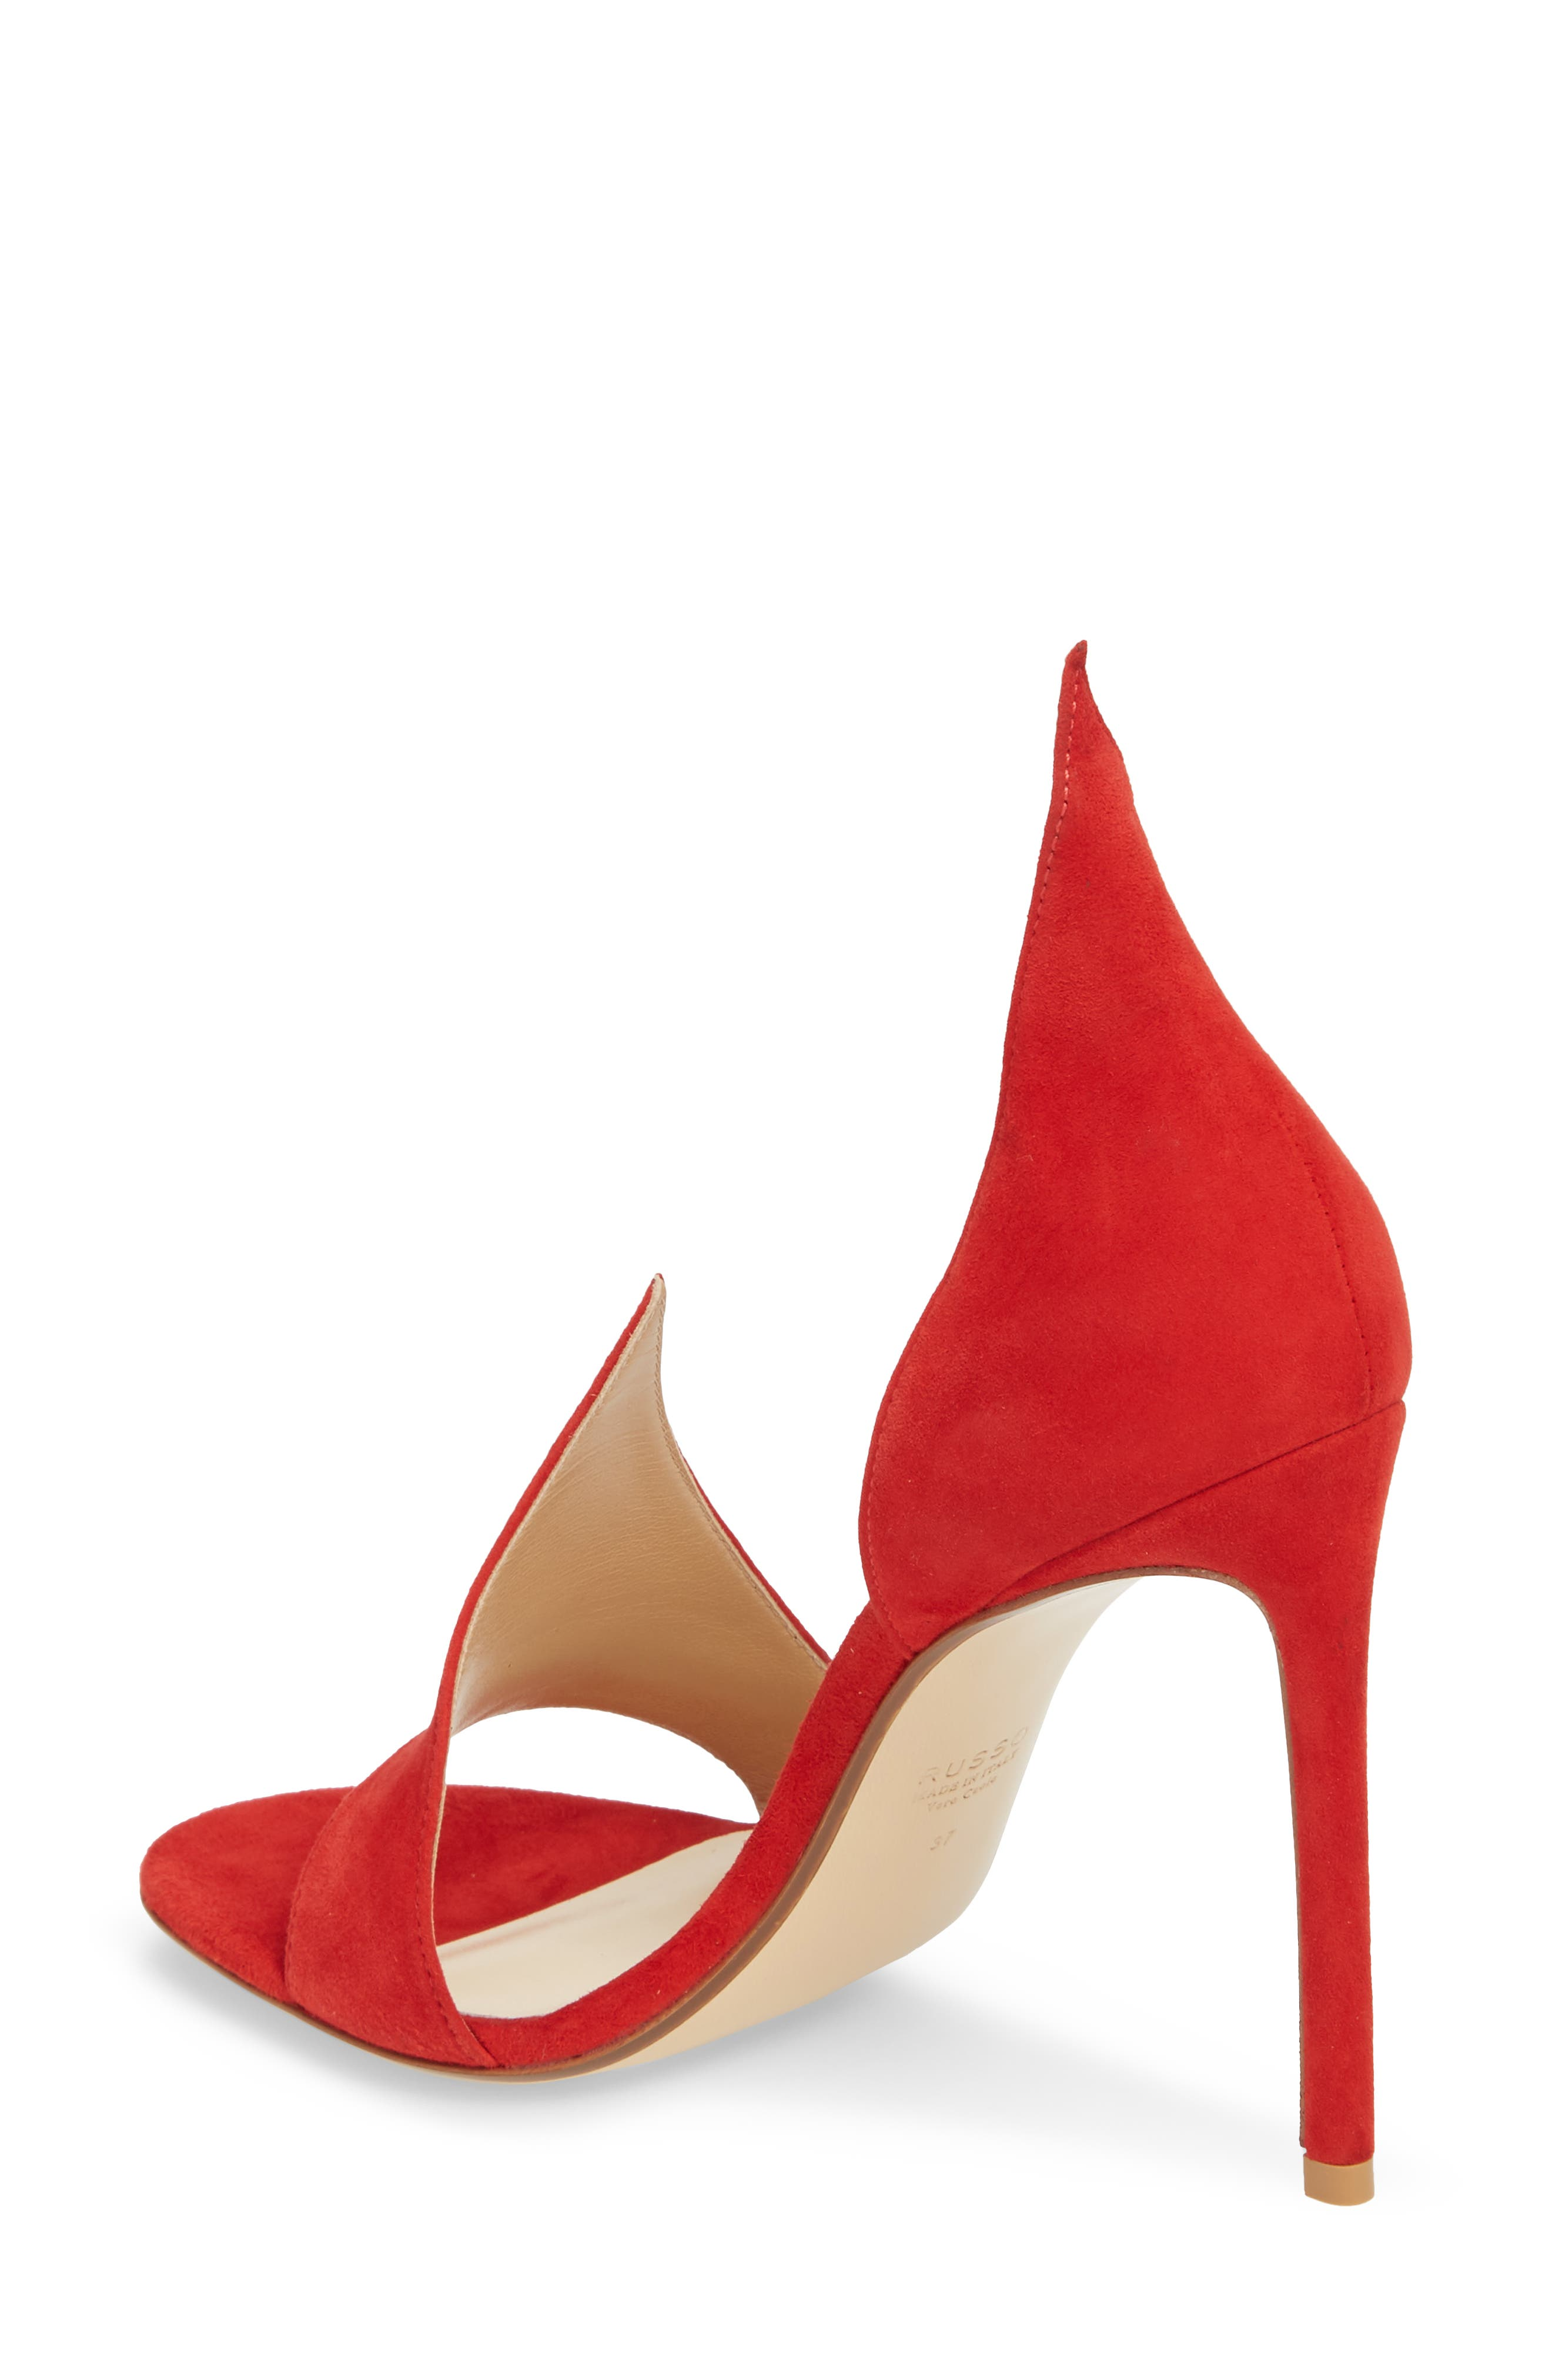 Flame Sandal,                             Alternate thumbnail 2, color,                             Red Suede